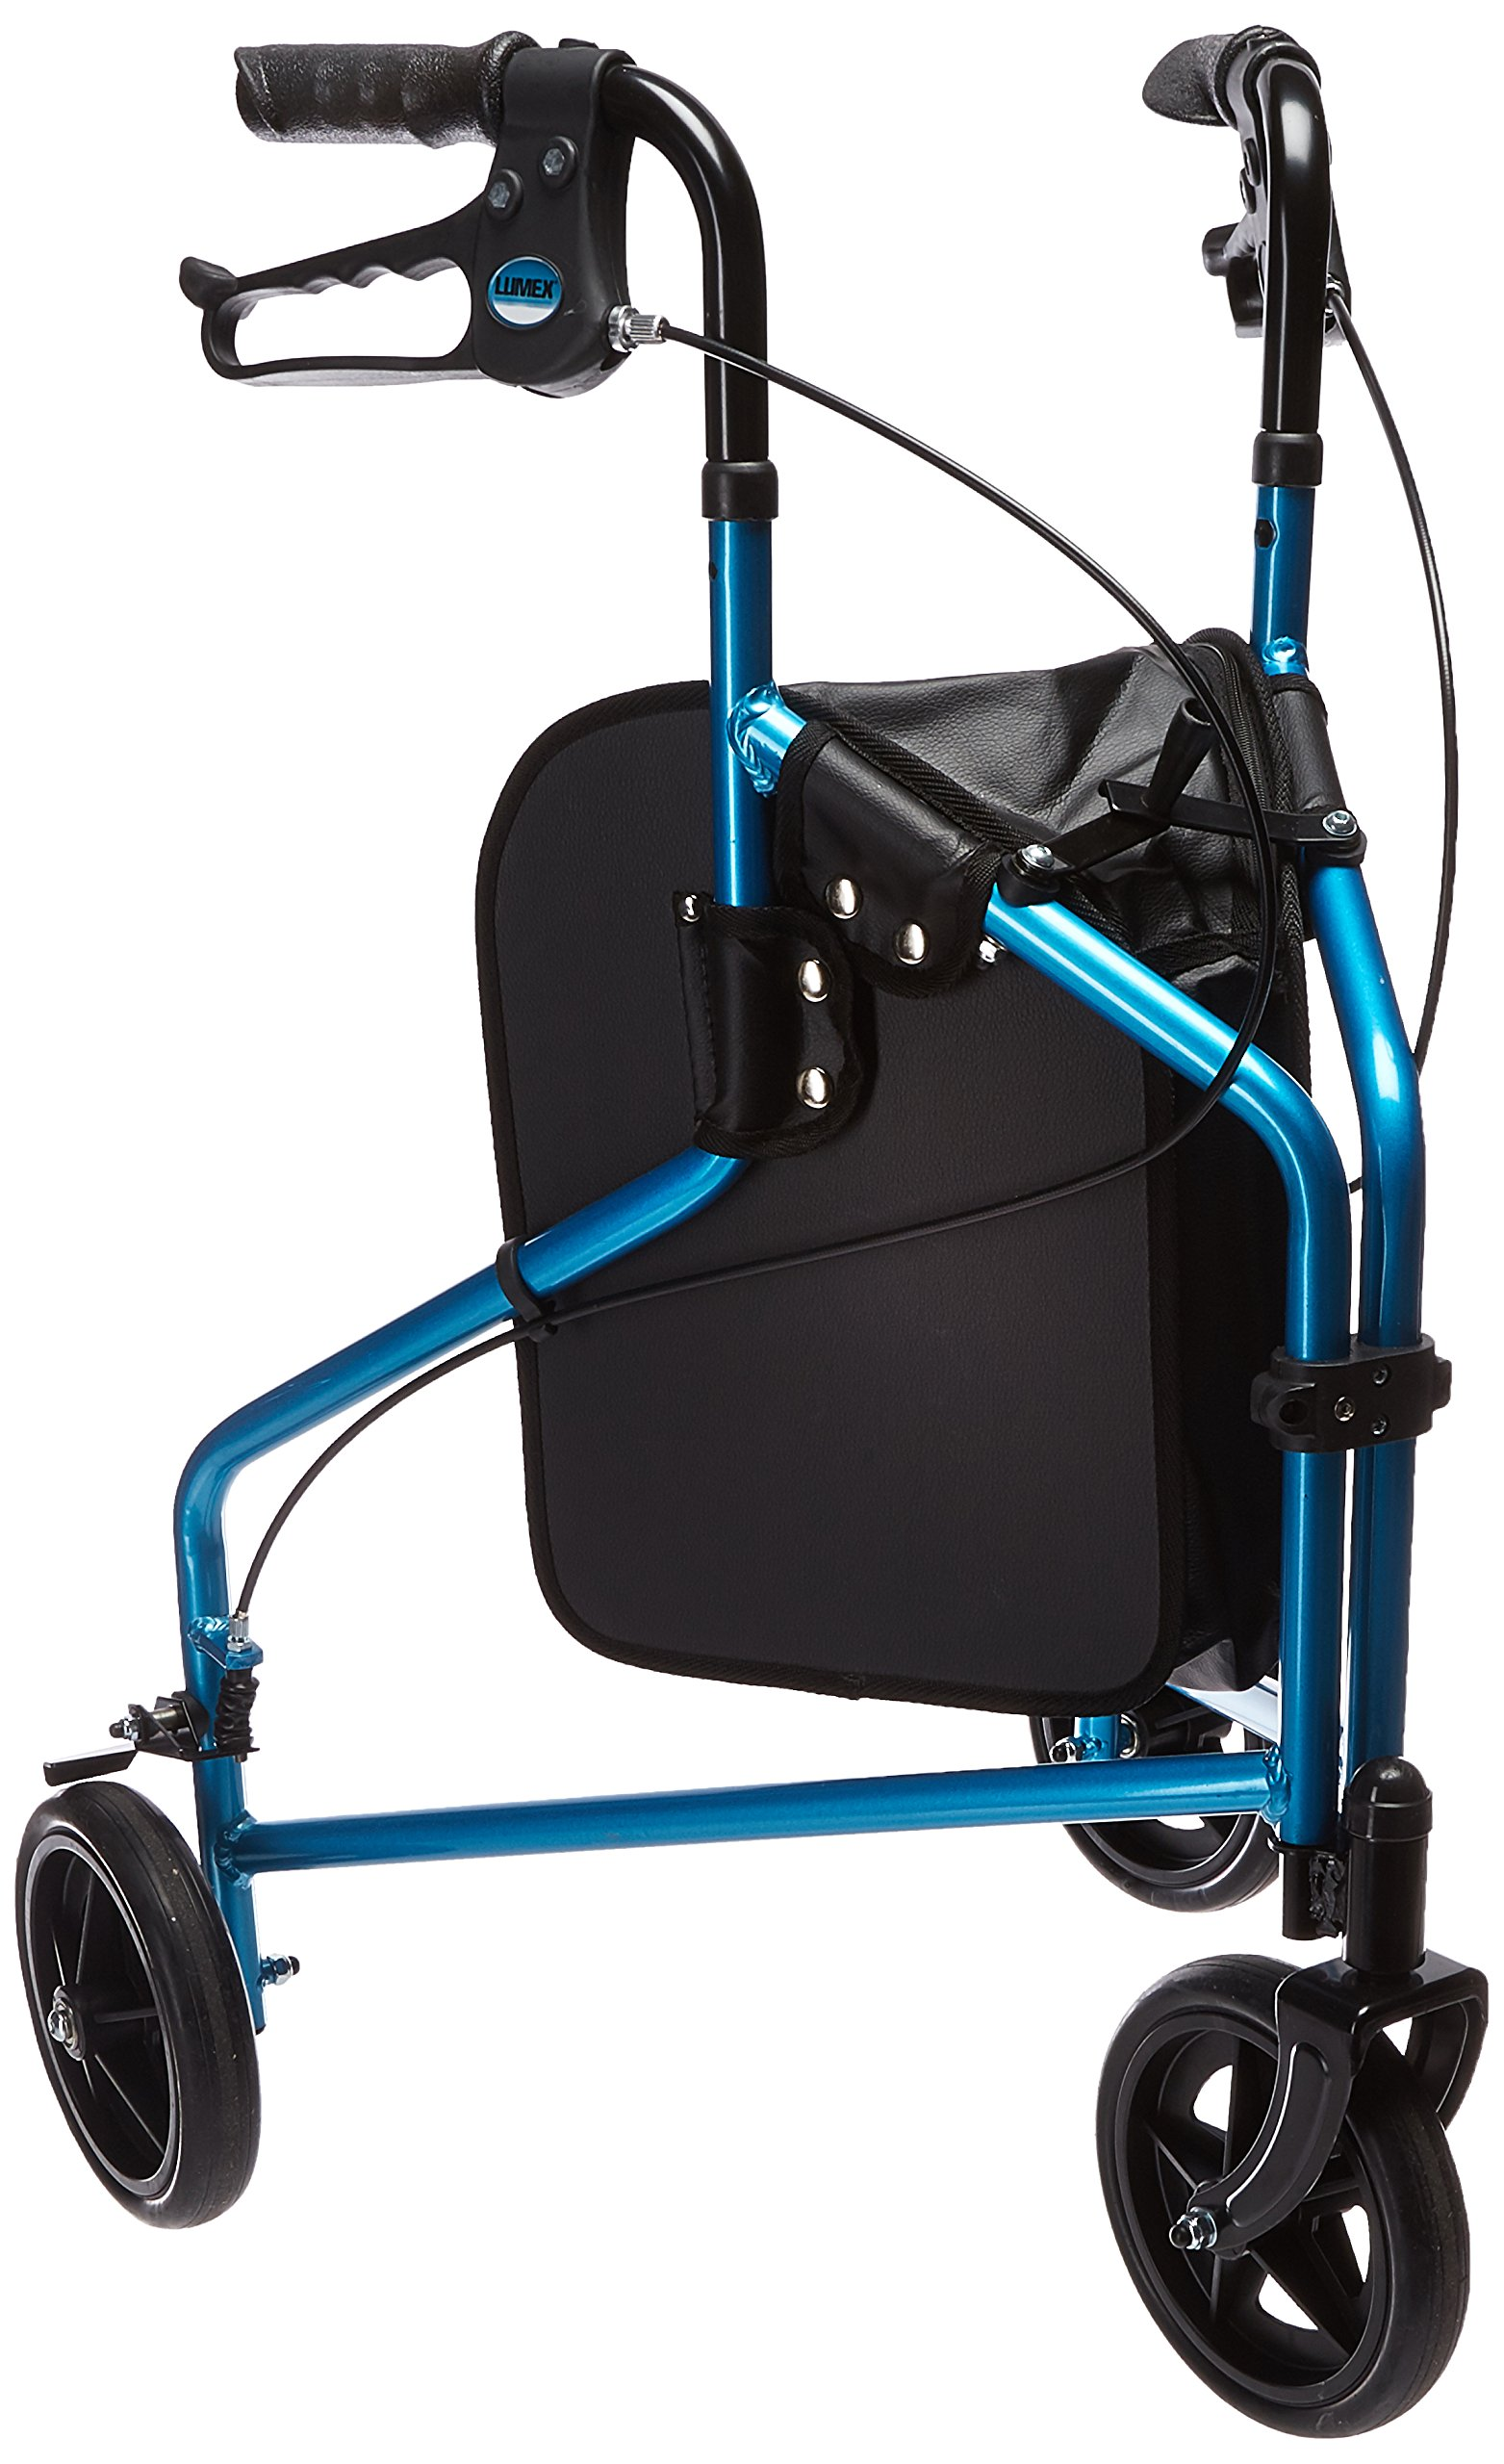 Lumex 3 Wheel Cruiser-Bondi Blue-Aluminum Frame of 8'' Wheels, 14 Pound